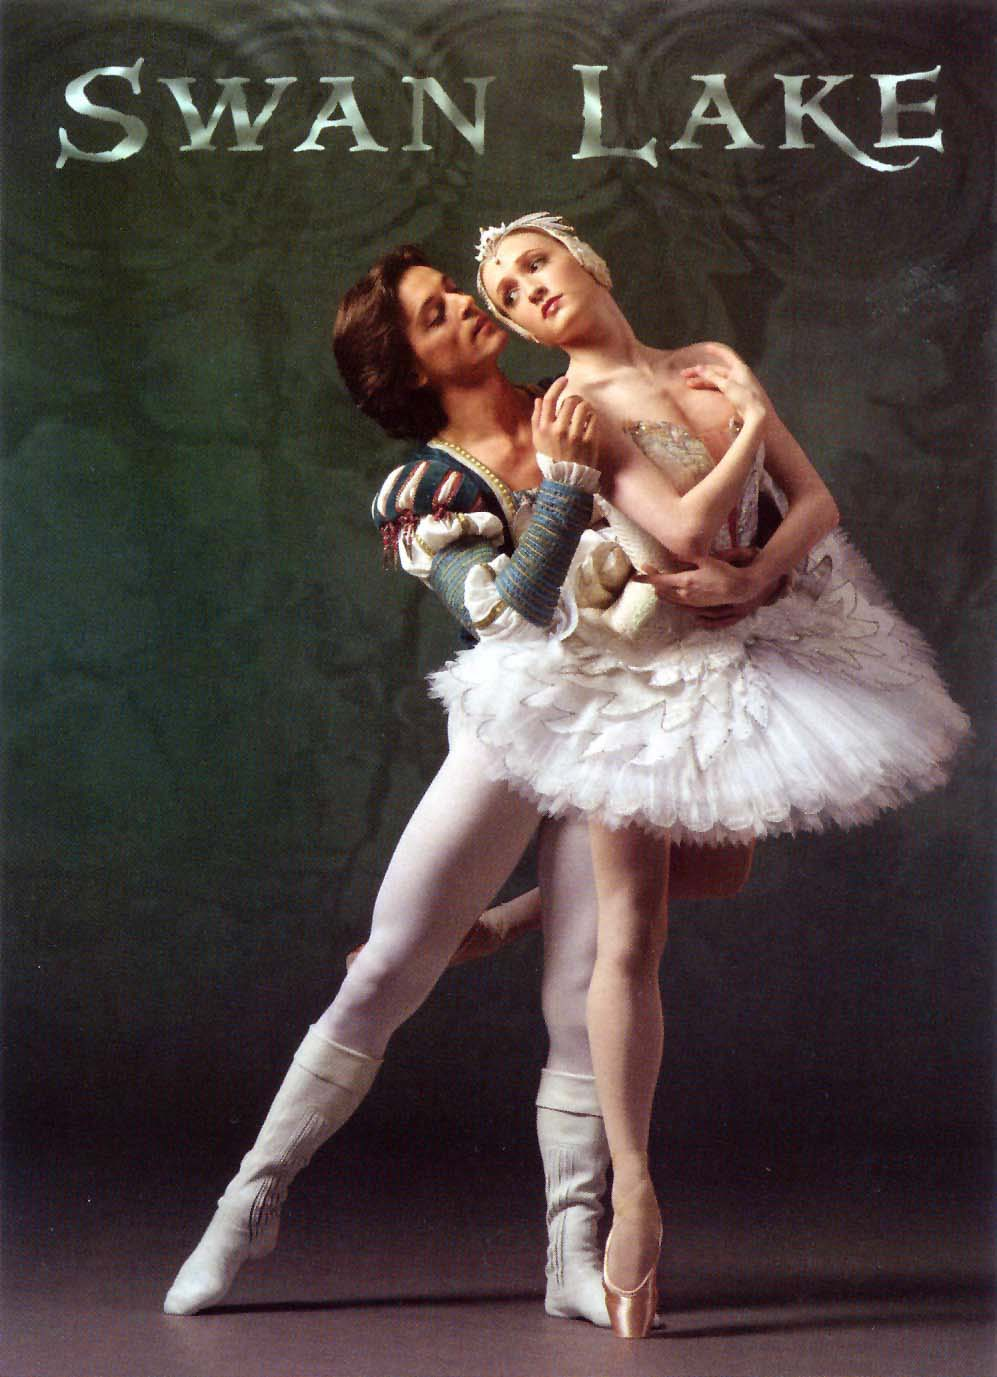 Gillian in Swan Lake, June 2005.